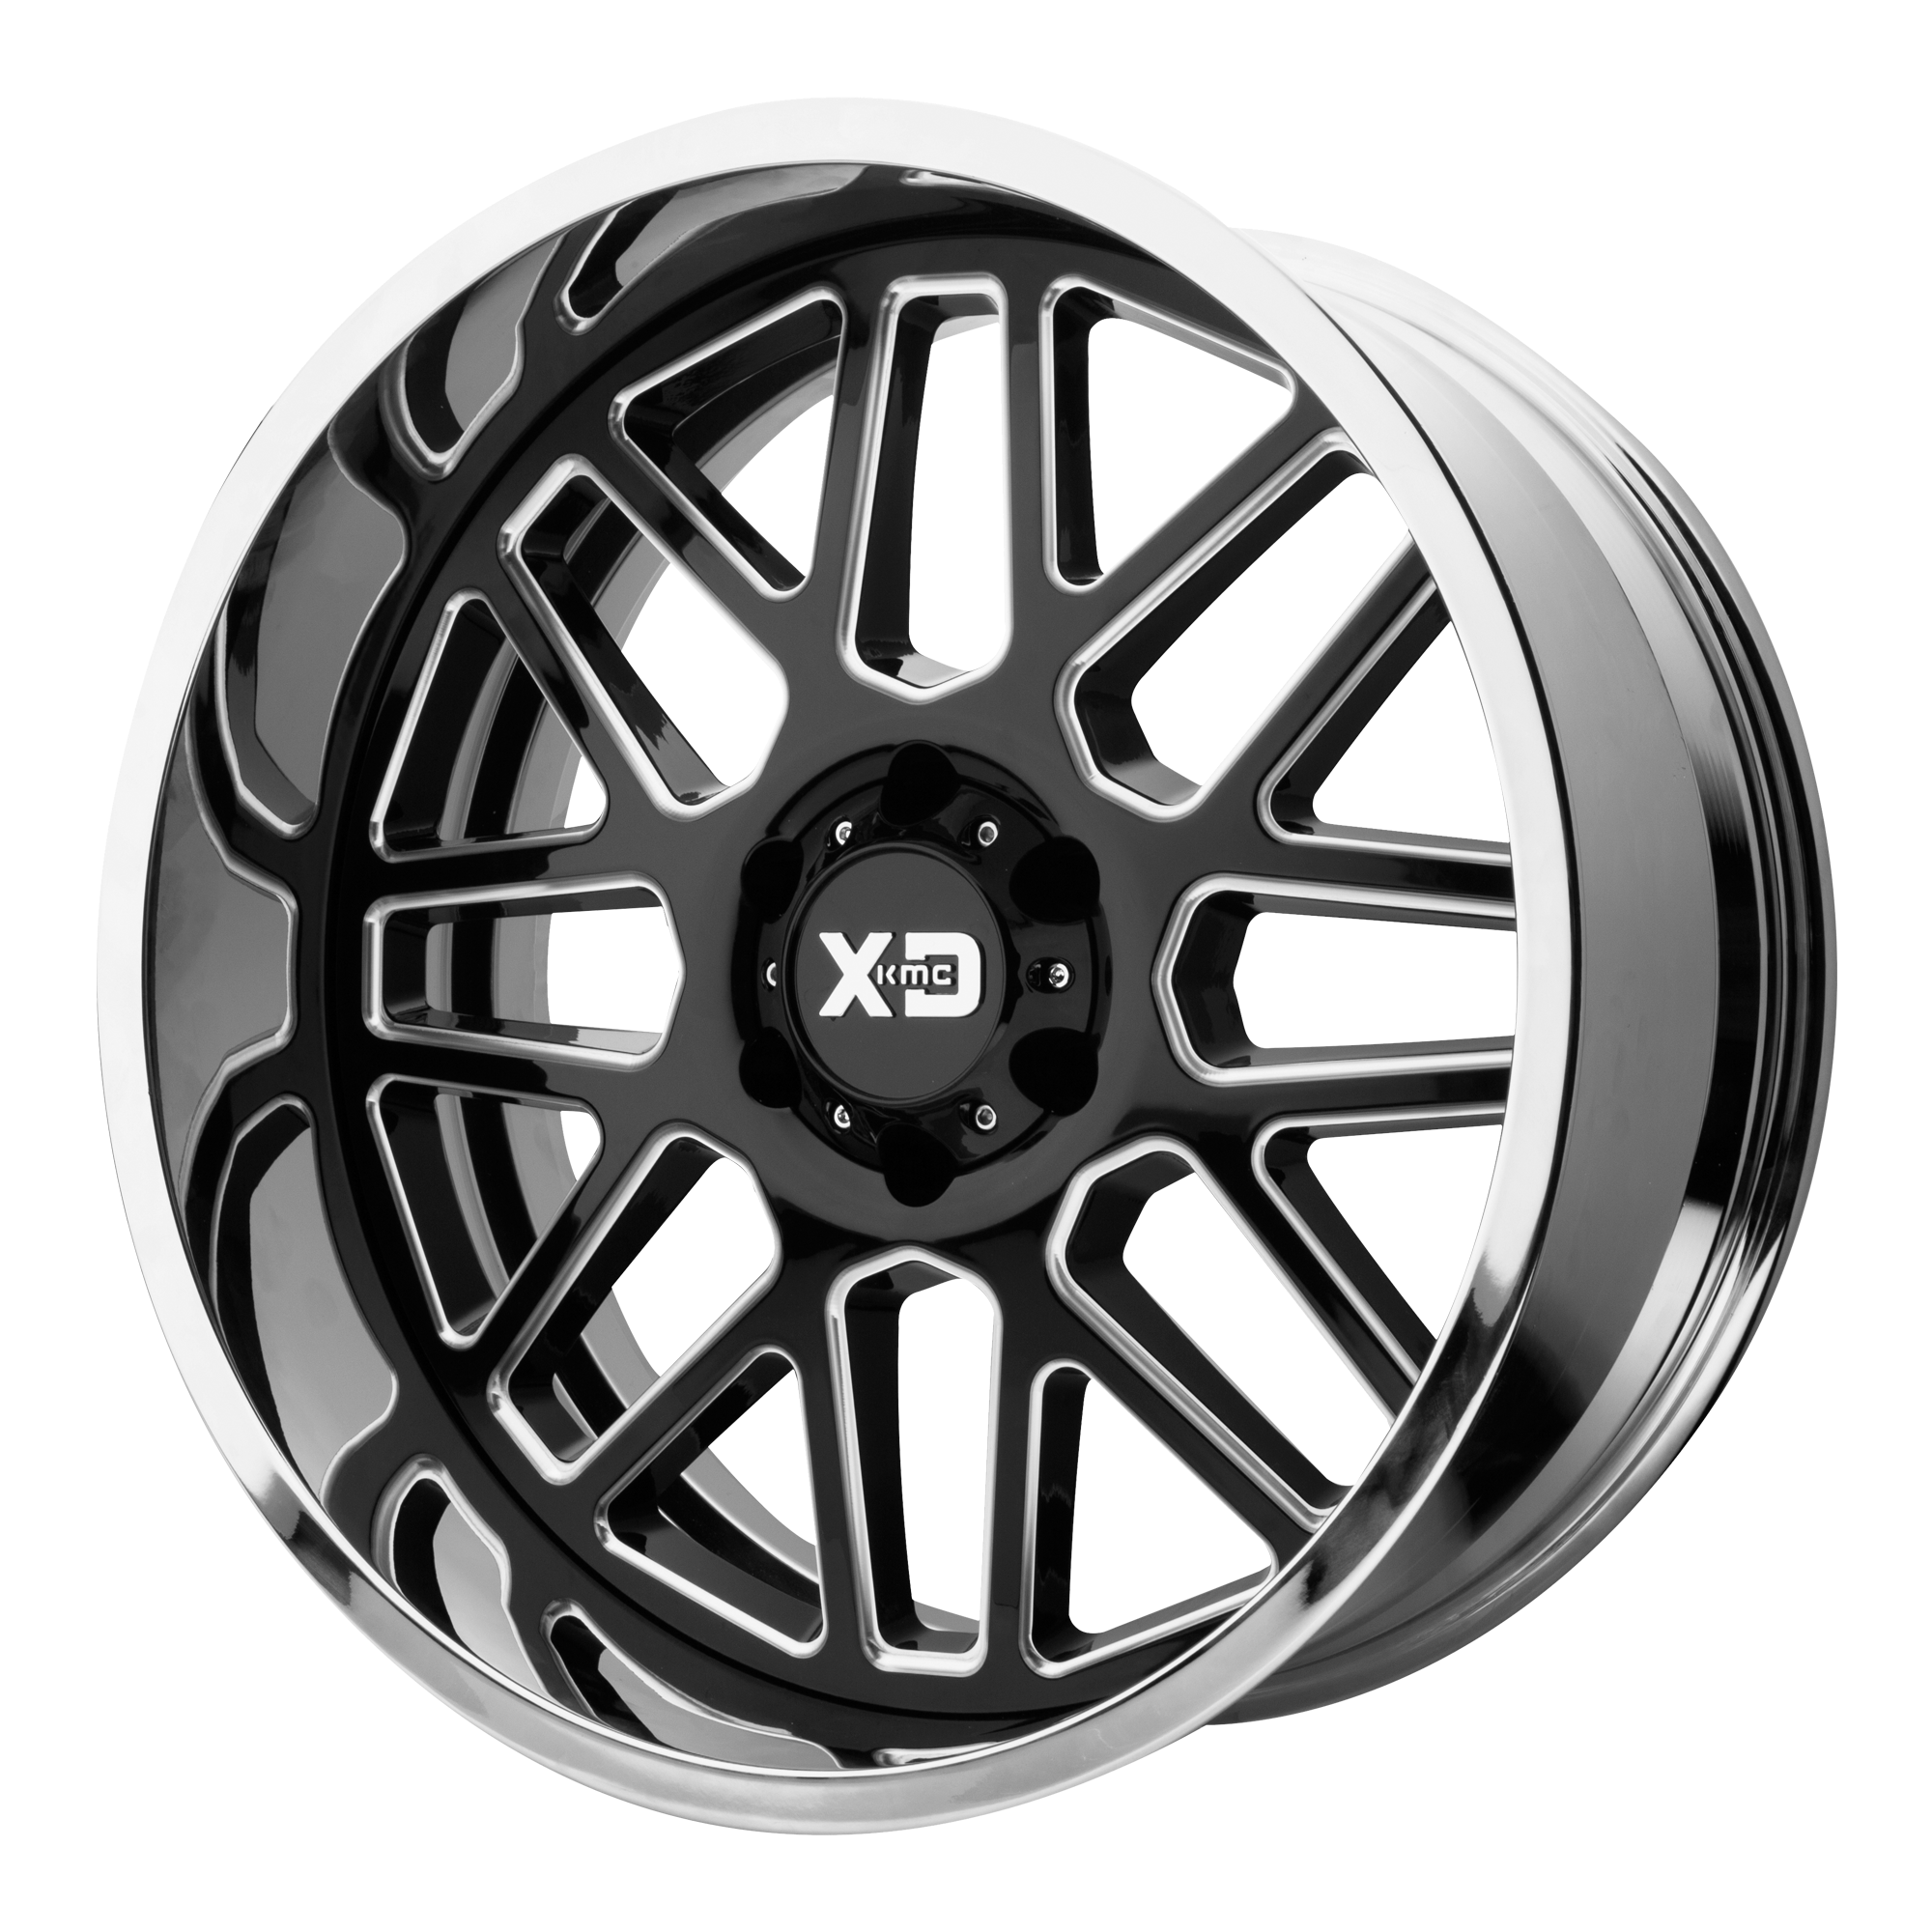 XD Series by KMC Wheels GRENADE Gloss Black Milled Center w/ Chrome Lip